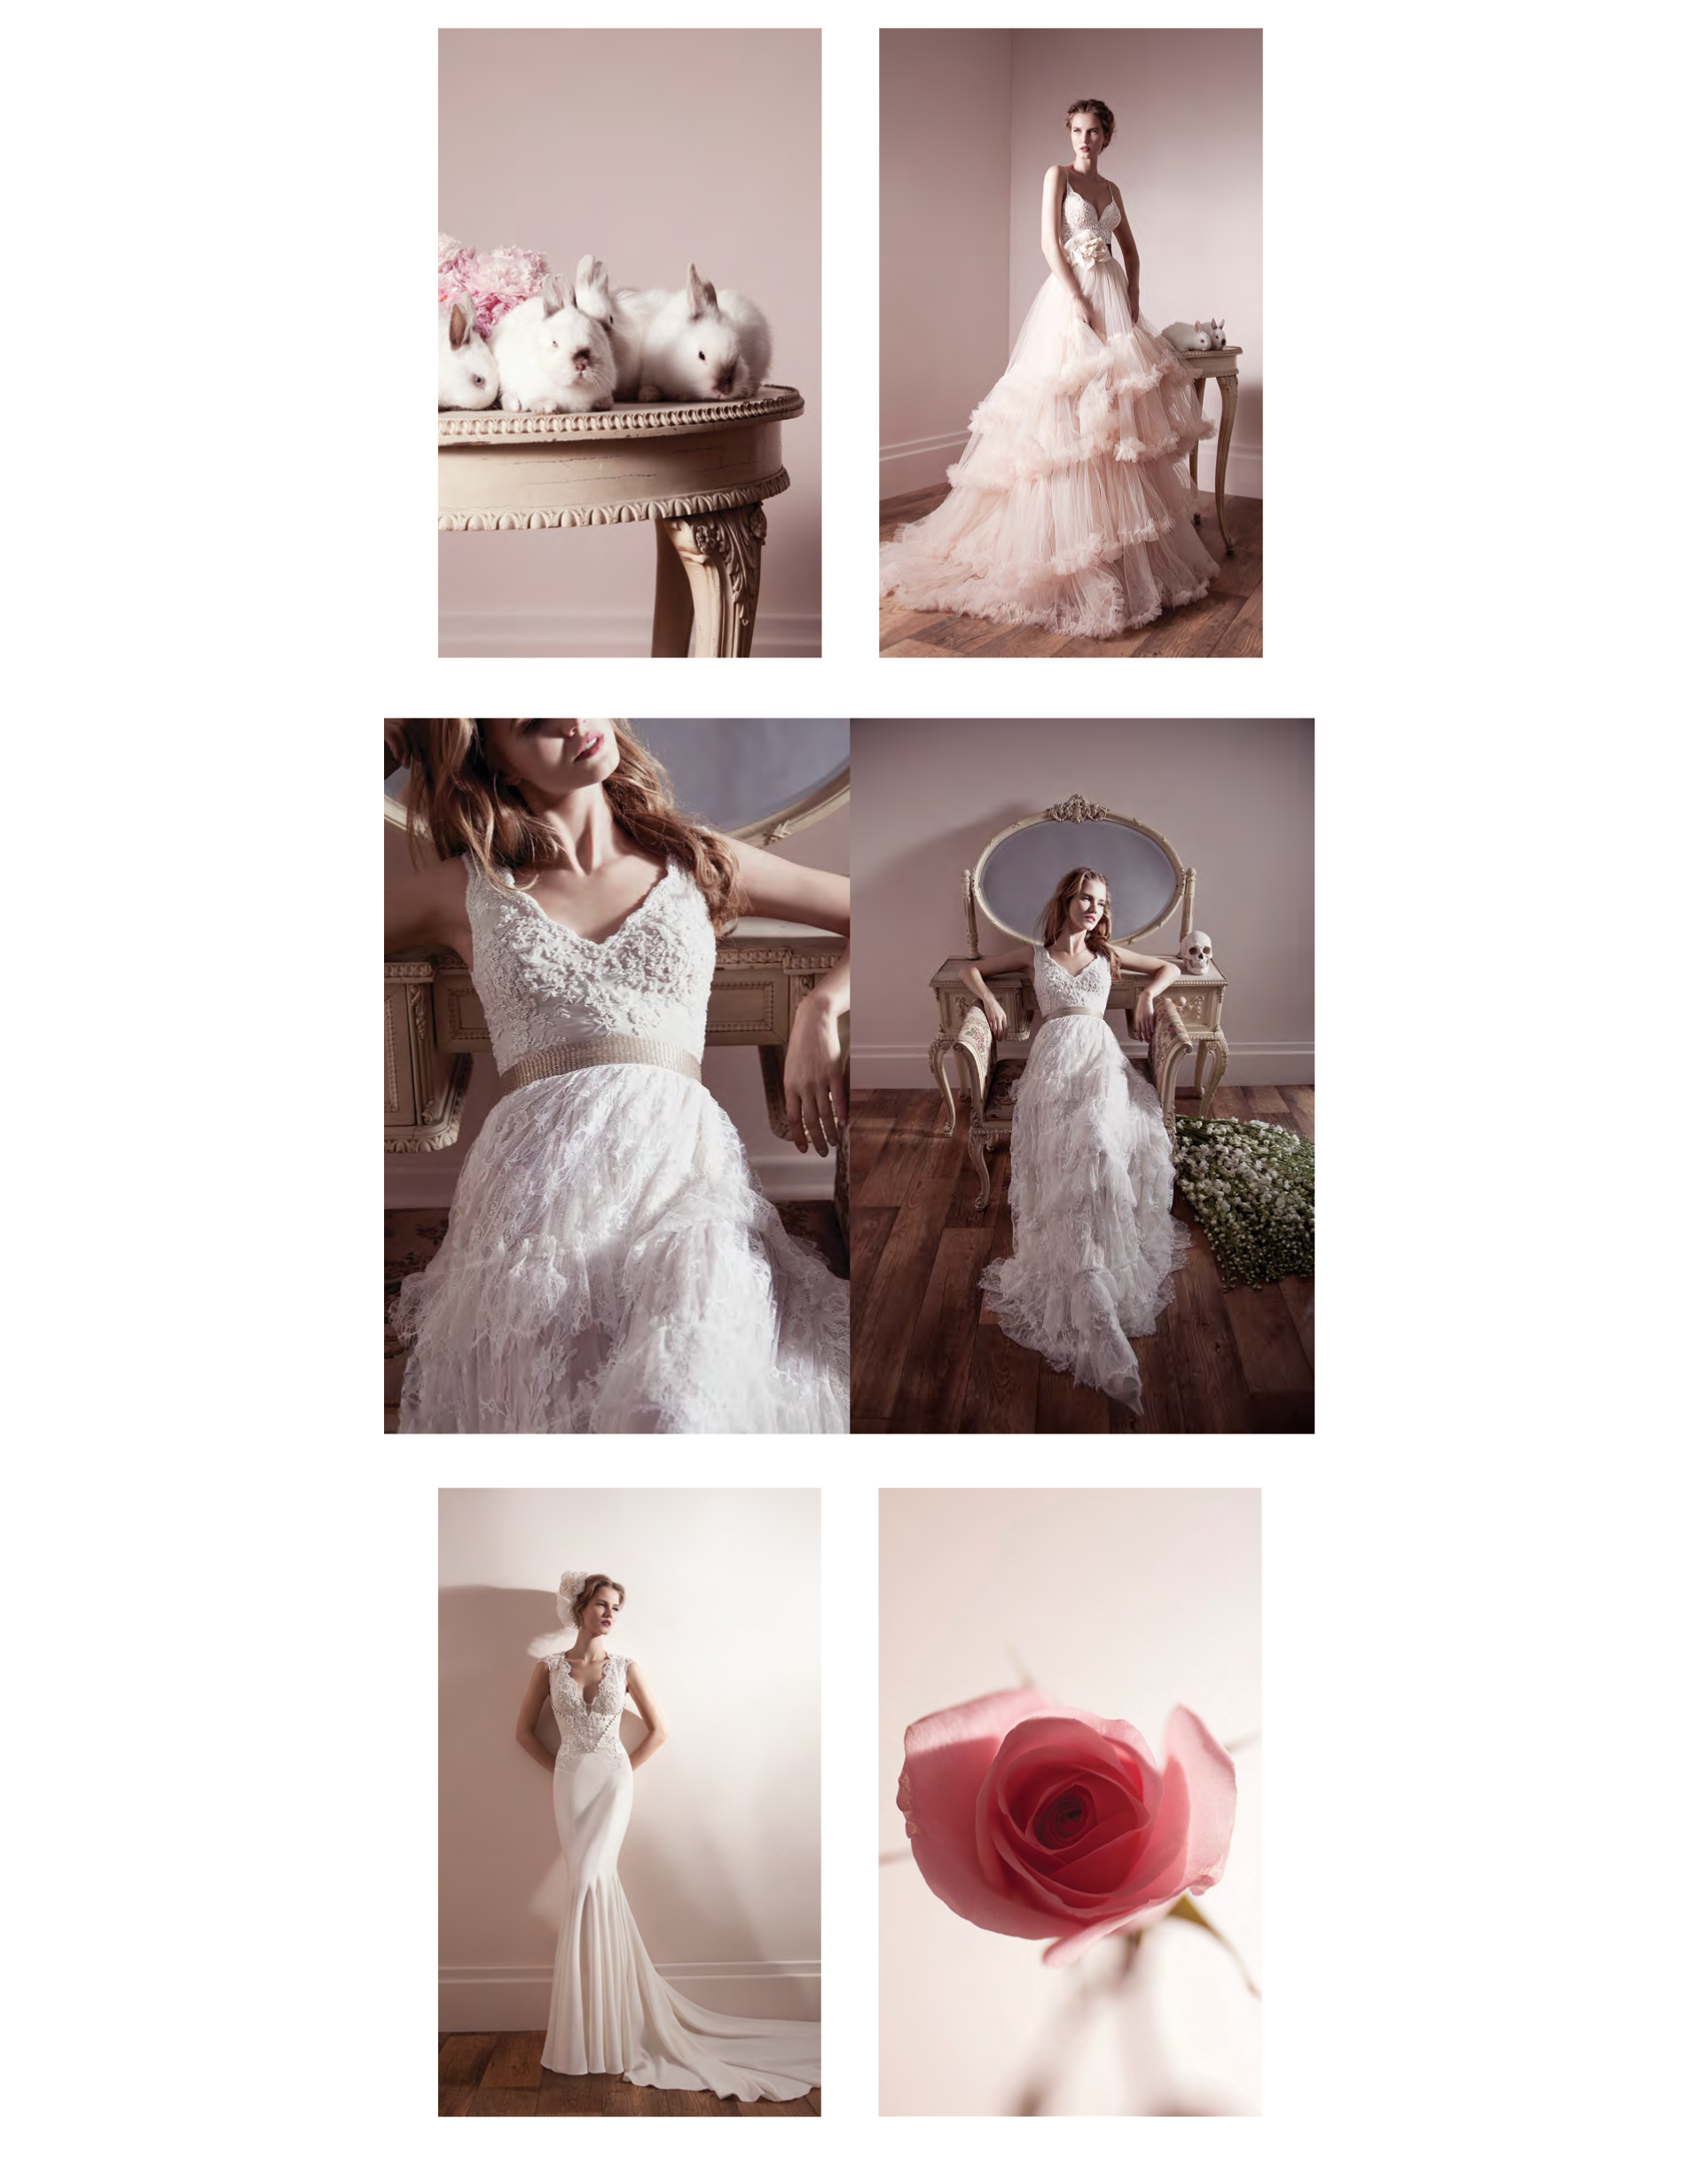 Lihi-Hod-Bridal-Body-09-Nadmiz-Graphic-Design-Nadav-Mizrahi